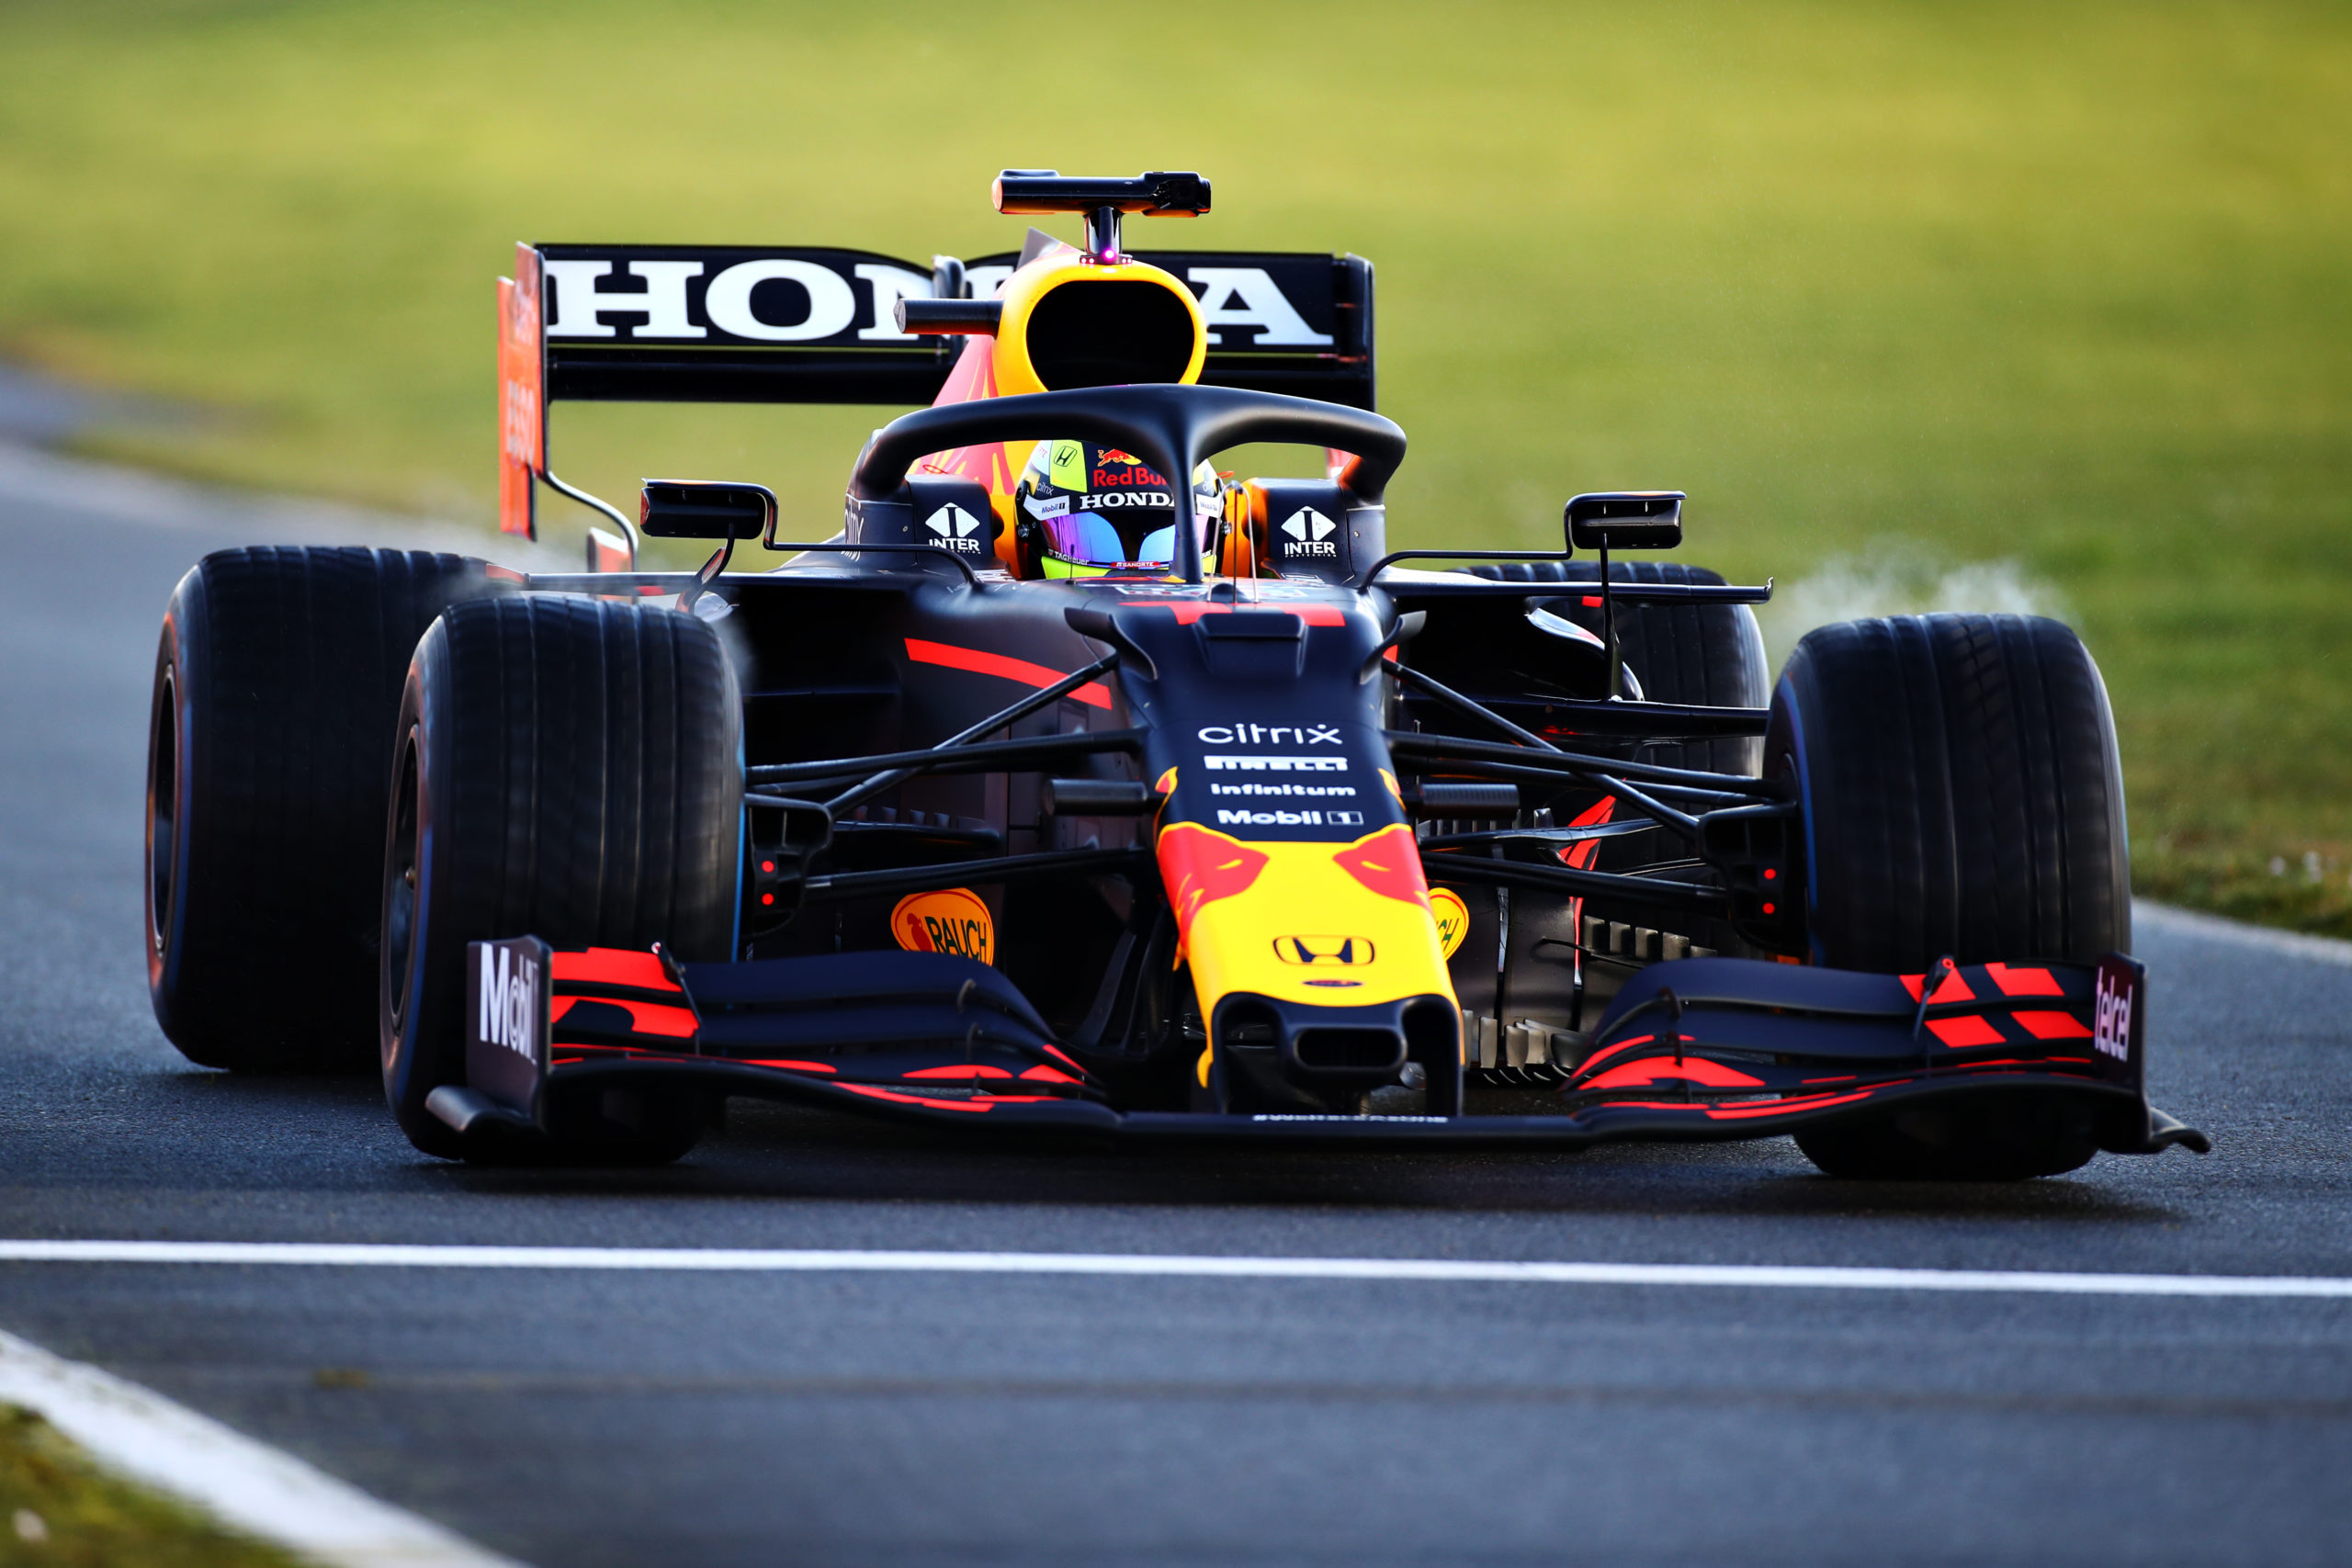 NORTHAMPTON, ENGLAND - FEBRUARY 22: Sergio Perez of Mexico driving the (11) Red Bull Racing RB15 Honda at Silverstone on February 22, 2021 in Northampton, England. (Photo by Bryn Lennon/Getty Images for Red Bull Racing) // Getty Images / Red Bull Content Pool  // SI202102230152 // Usage for editorial use only //